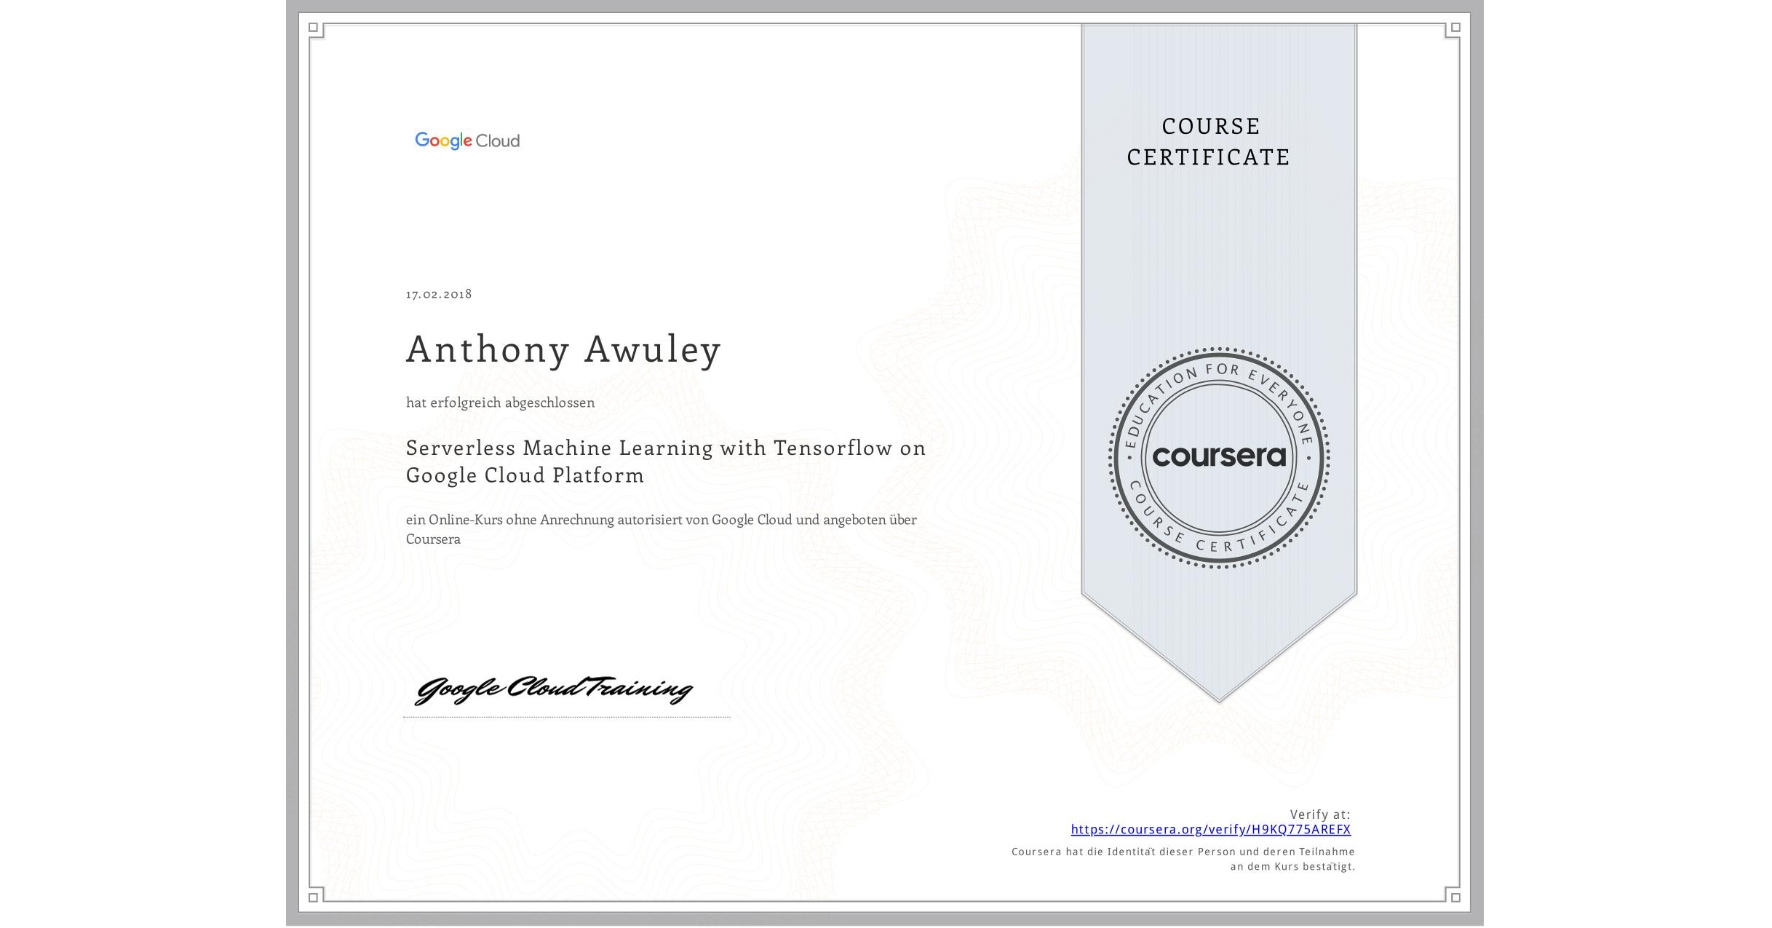 View certificate for Anthony Awuley, Serverless Machine Learning with Tensorflow on Google Cloud Platform, an online non-credit course authorized by Google Cloud and offered through Coursera